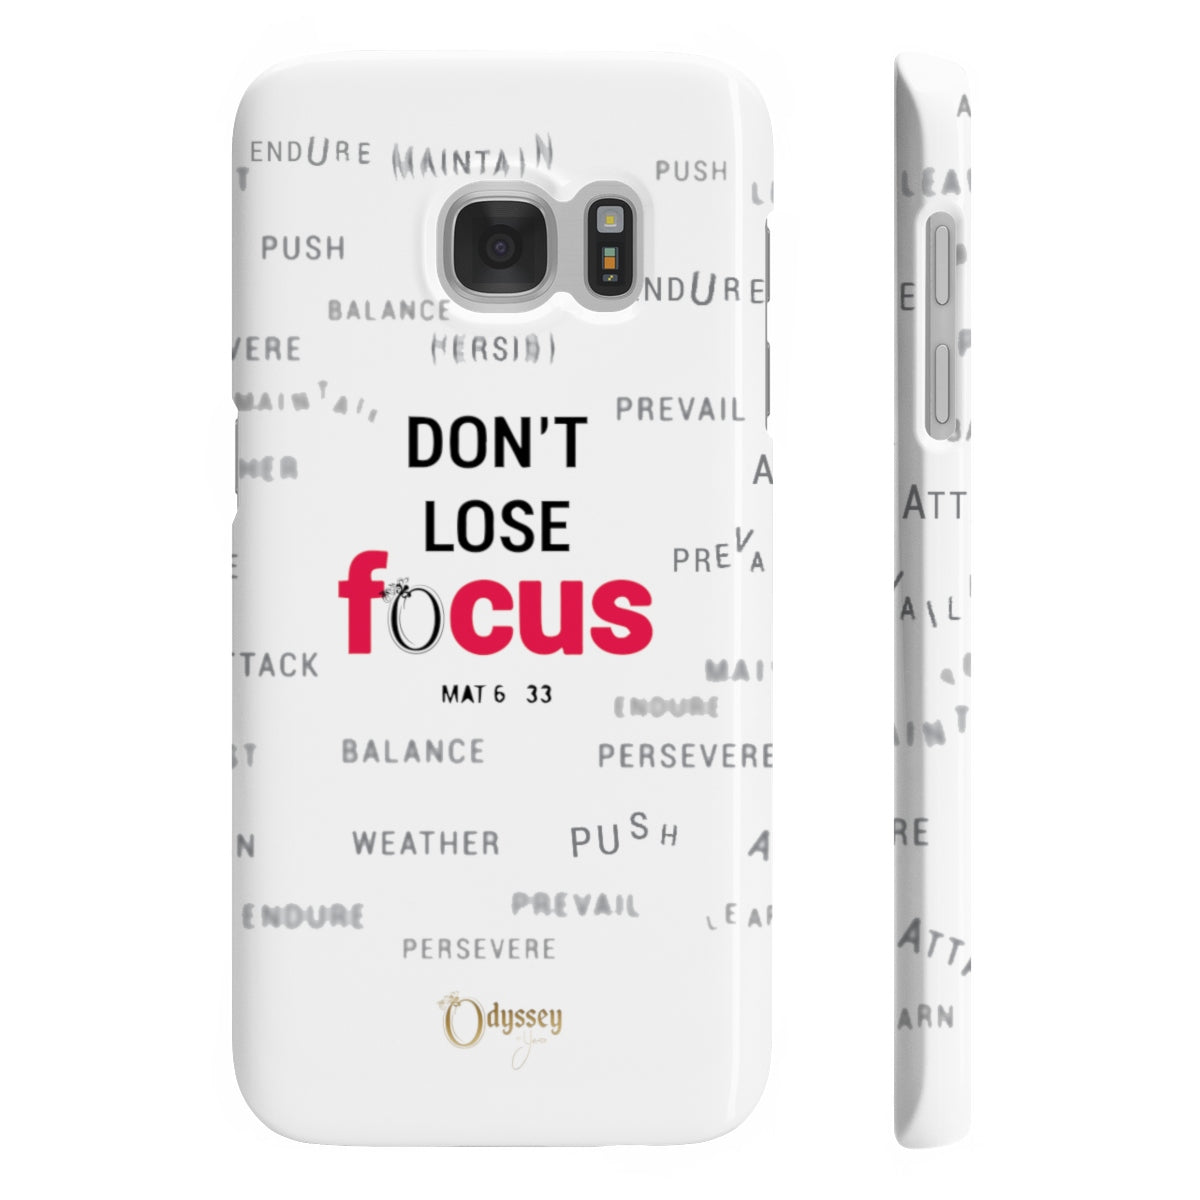 Odyssey Don't Lose Focus Slim Phone Cases - Phone Case - Odyssey By Yendi